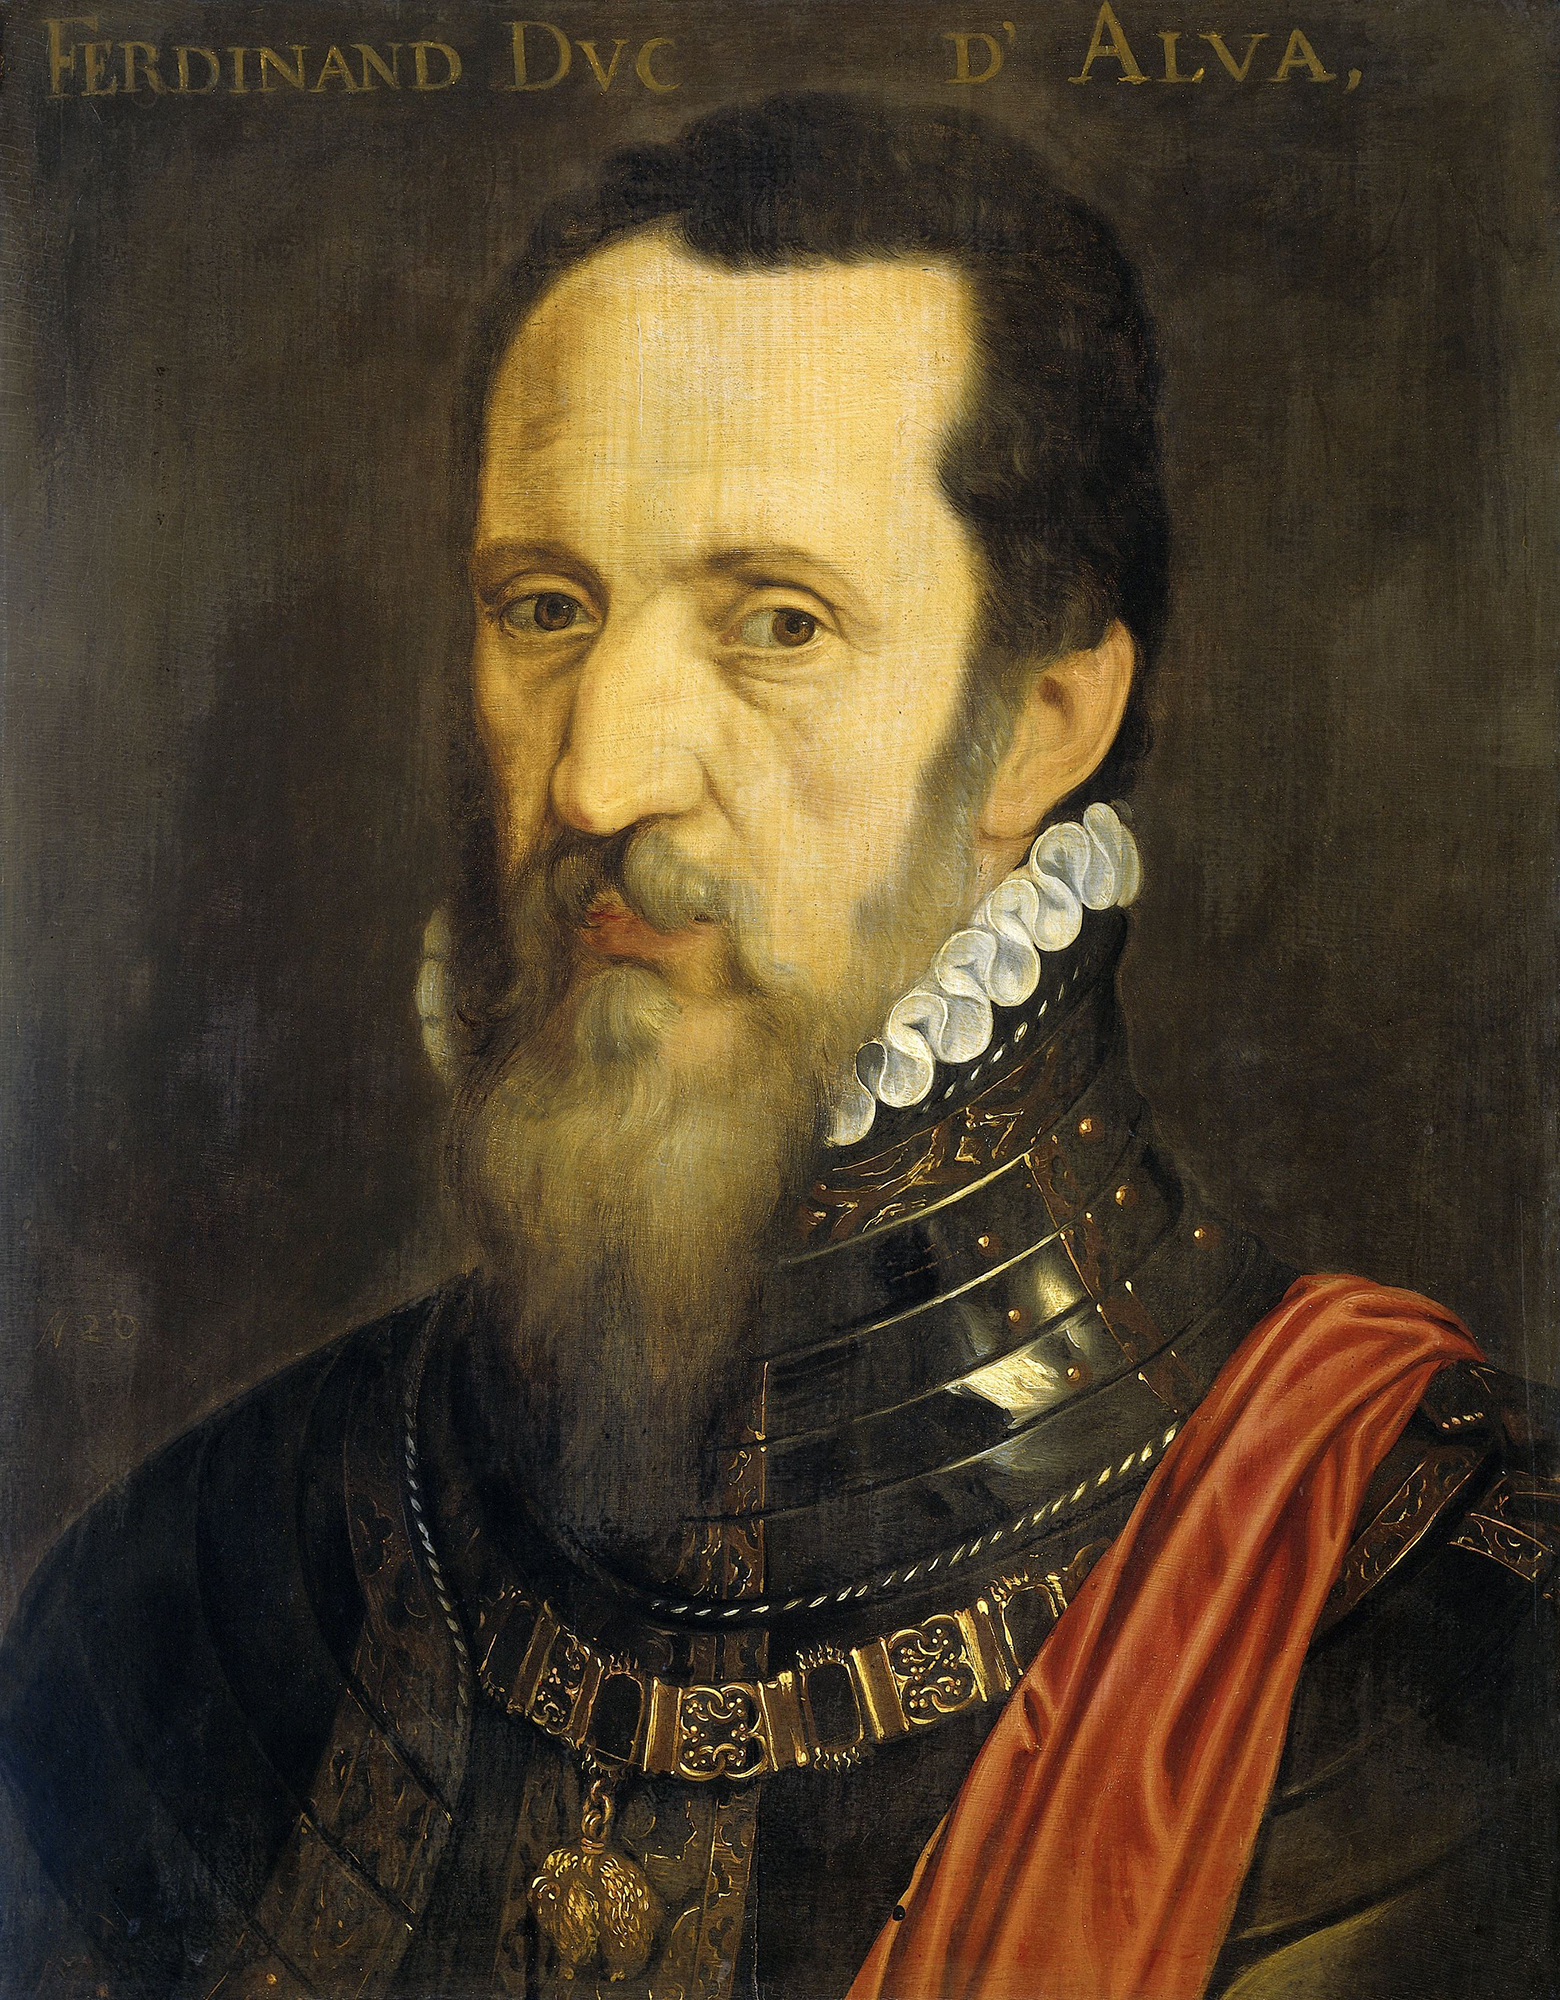 Portrait of Fernando Álvarez de Toledo (1507-1582), 3rd Duke of Alba (1531), Governor of Milan (1555-1556), Viceroy of Naples (1556-1558), Governor of the Netherlands (1567-1573), Viceroy of Portugal (1580-1582), High Steward  (Mayordomo mayor) to the King of Spain (1541-1582), Captain general of the Spanish Army, Grandee of Spain | Portraits of Kings